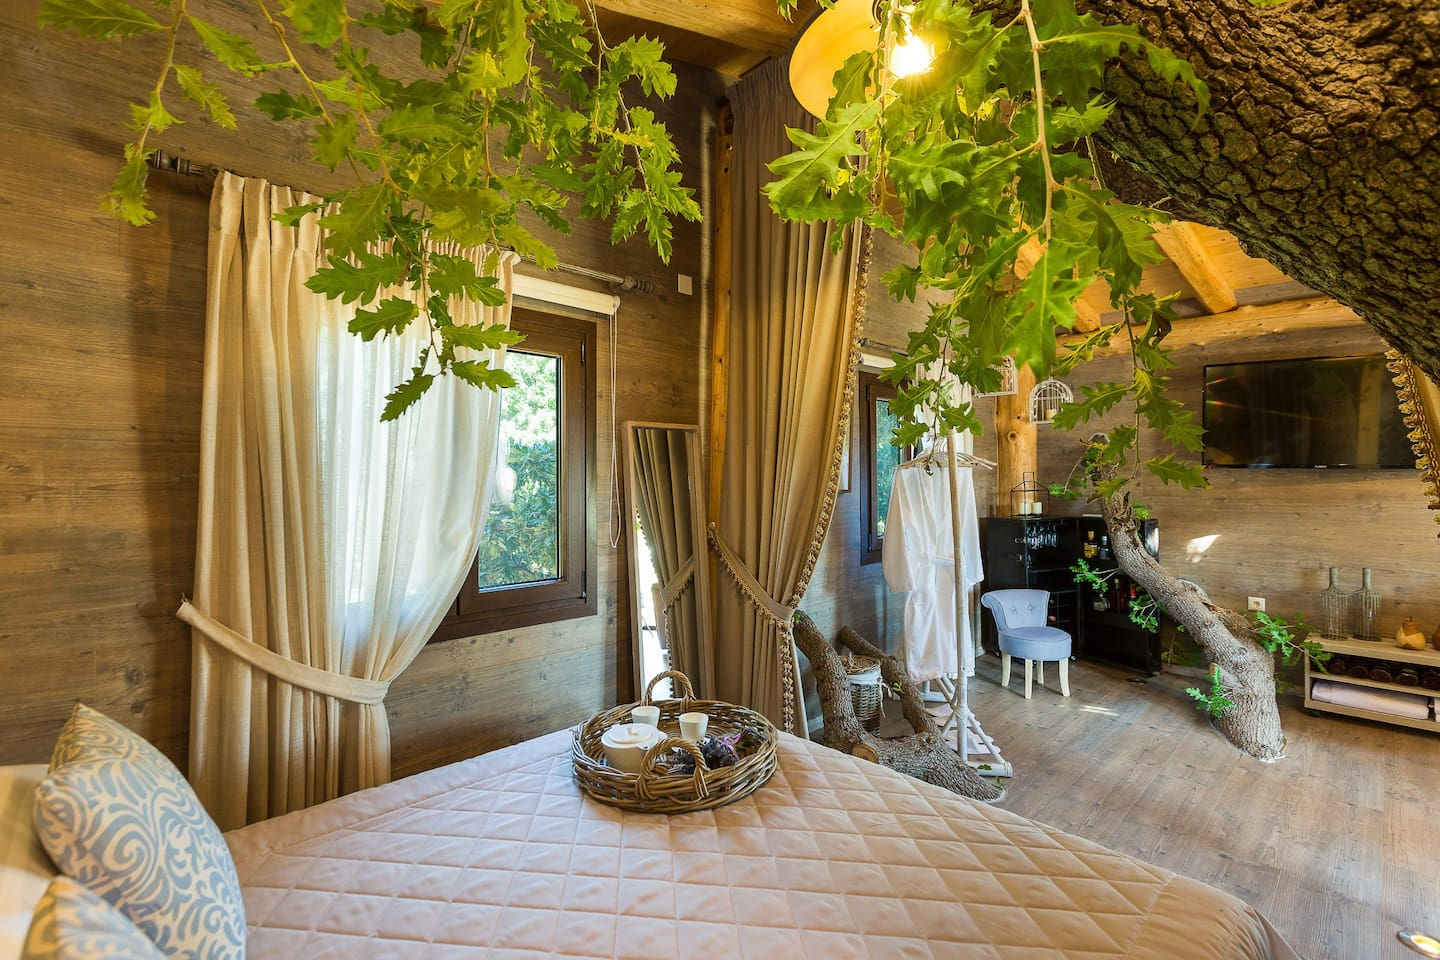 The wooden floors and ceilings and soft brown and grey tones of the fabrics and furniture, also add to the natural sensation of the rooms.